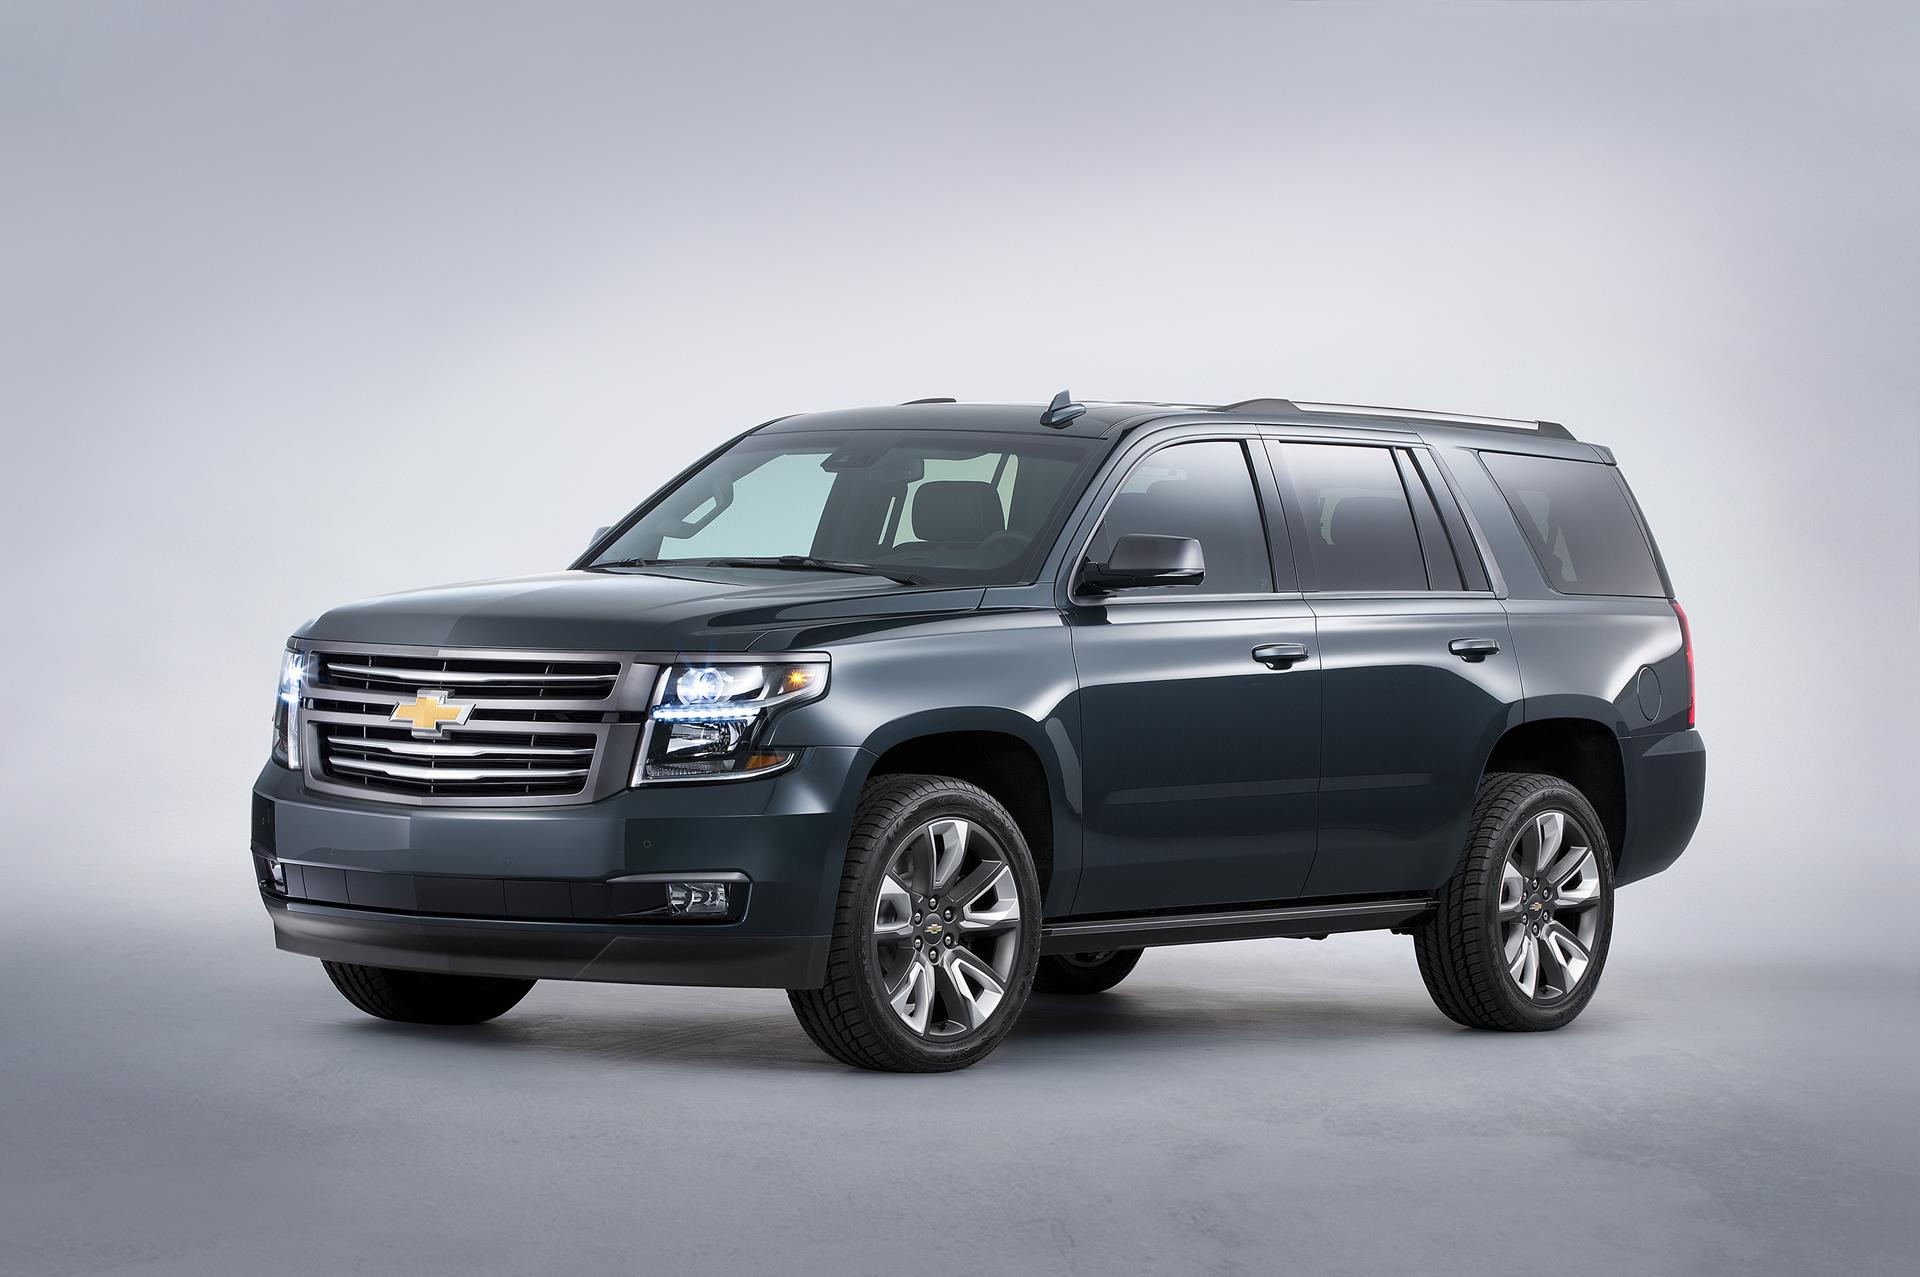 2015 chevrolet tahoe premium outdoors concept news and information